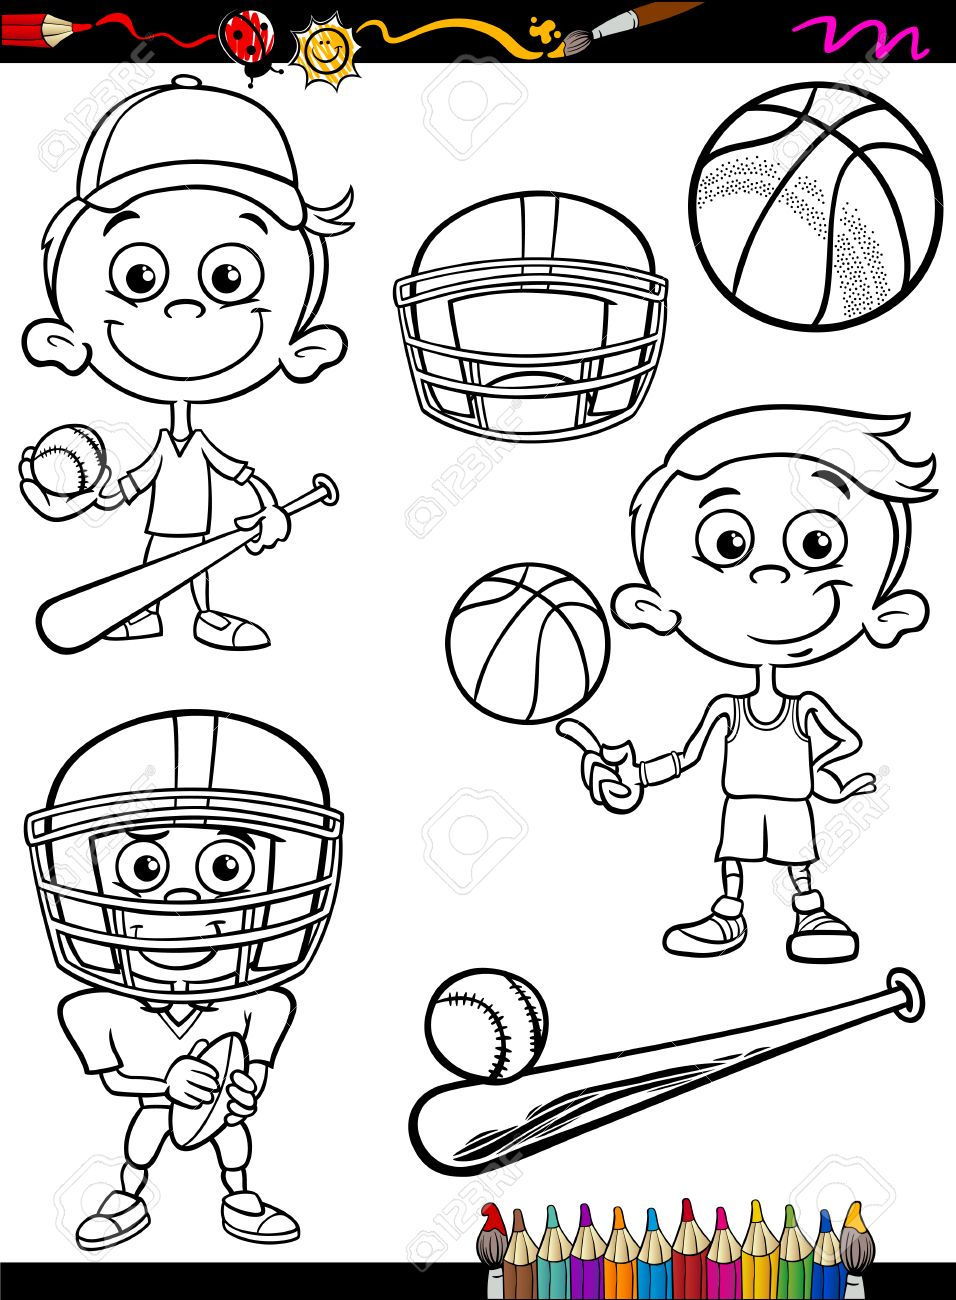 Coloring Book Or Page Cartoon Illustration Of Black And White Boy Kid Playing Baseball Basketball